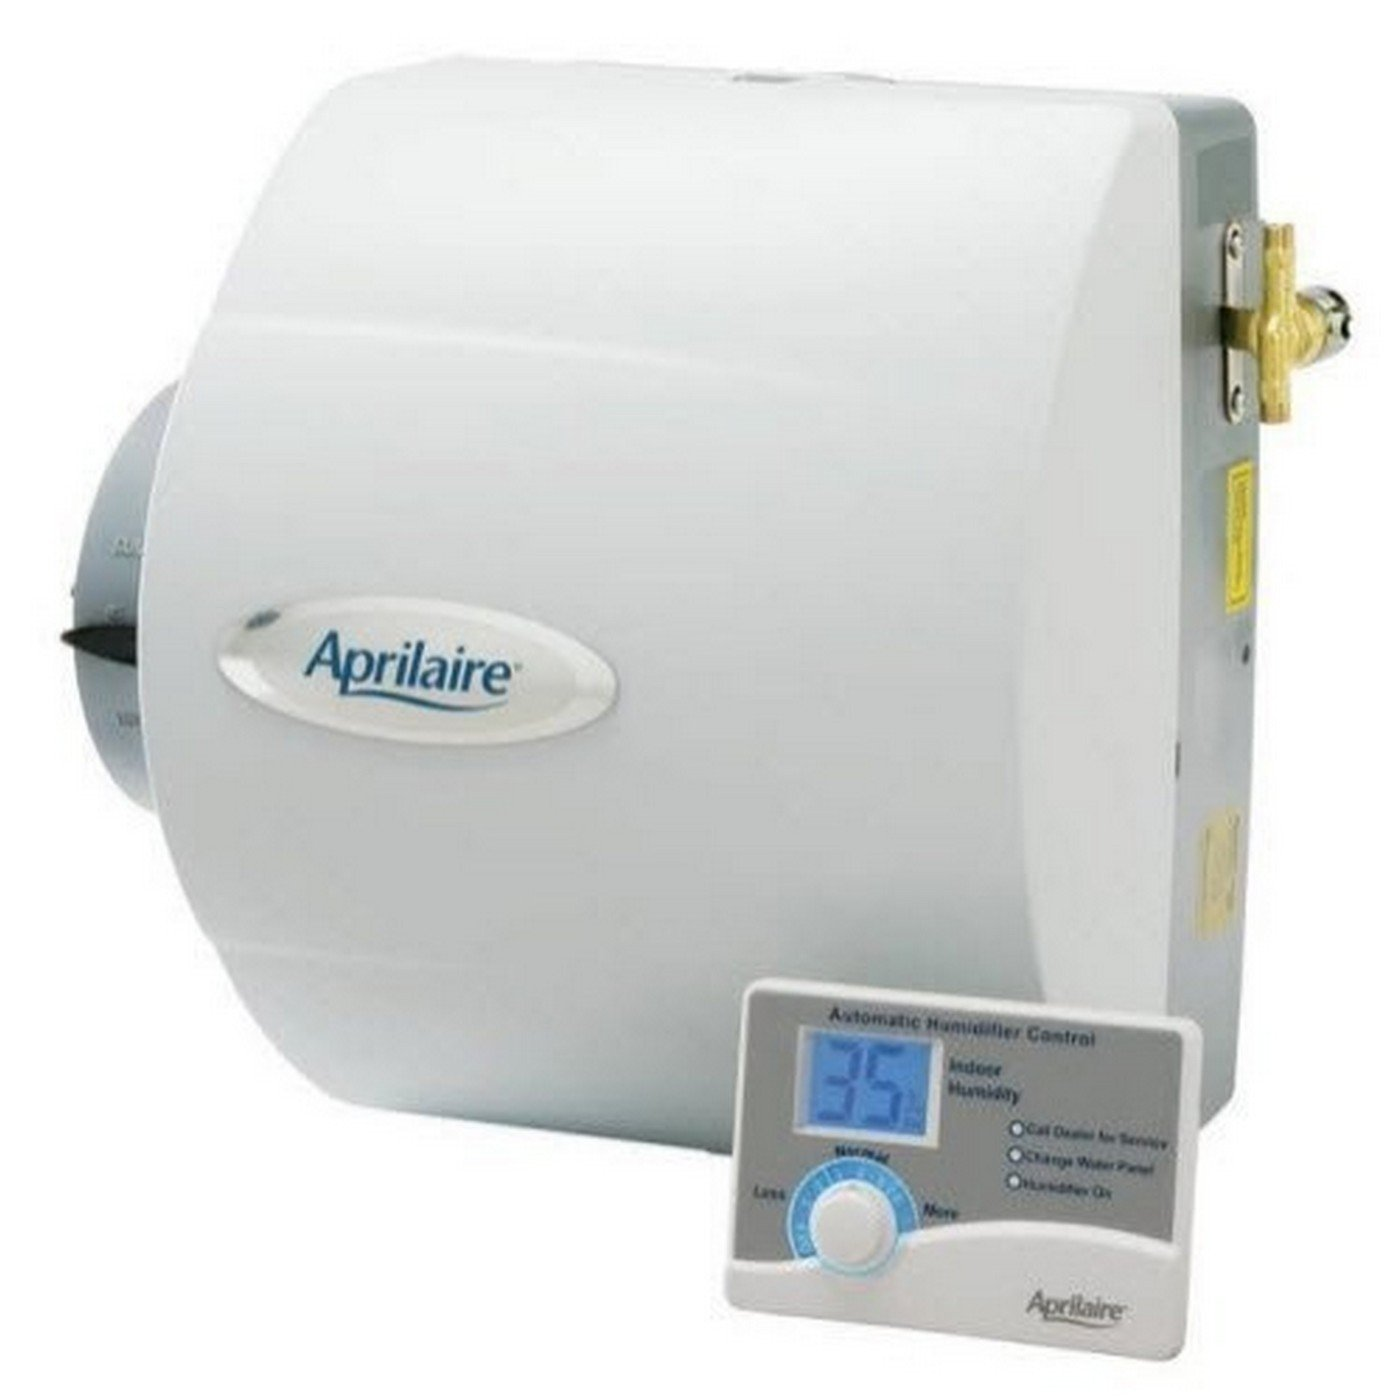 Aprilaire Whole House Humidifier #396492